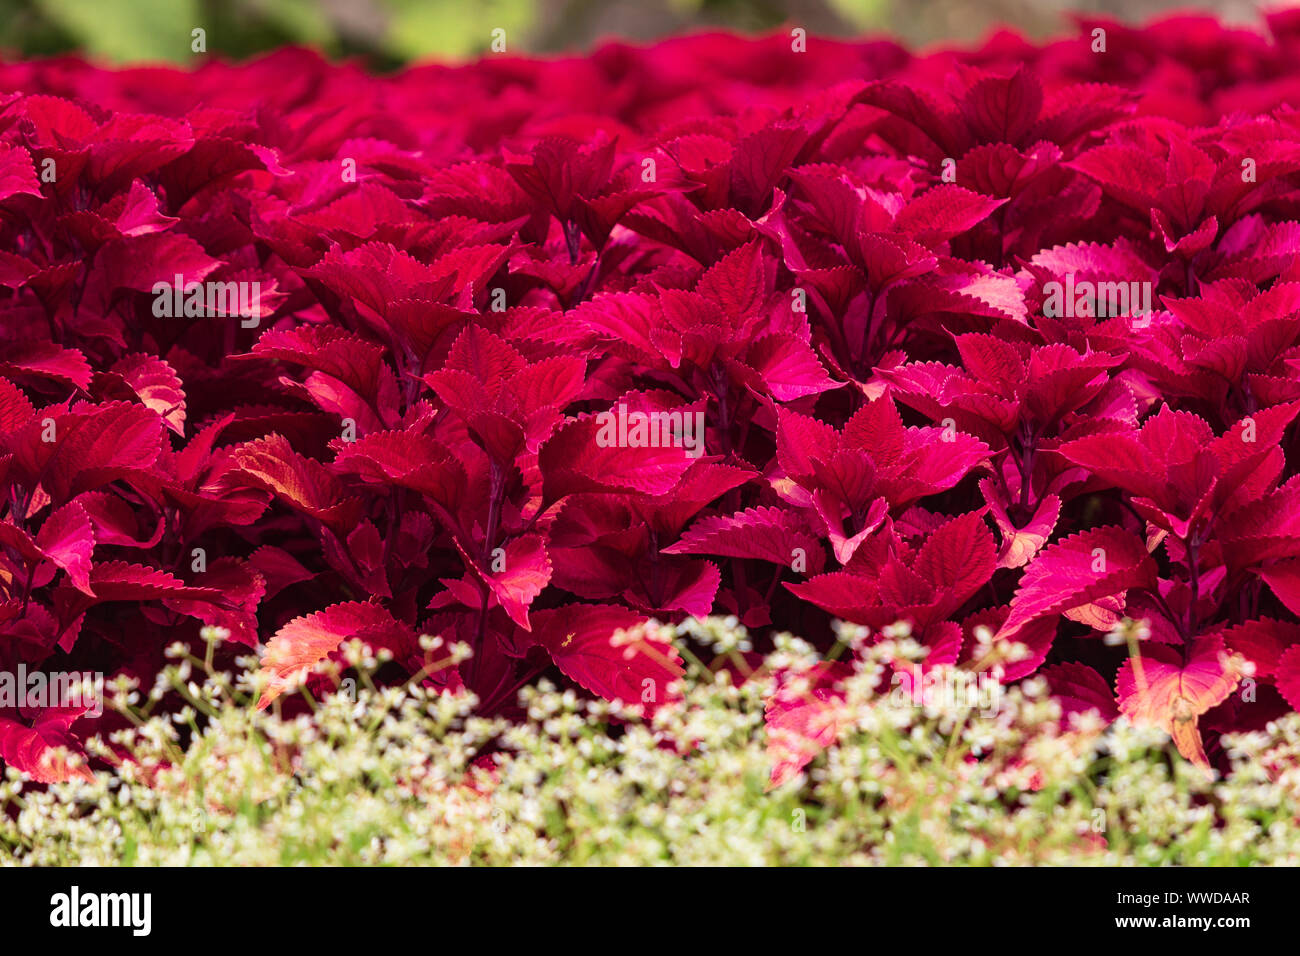 Though usually shade-loving, the Red Hat variety of coleus (Plectranthus scutellarioides) thrives in sunshine, in this showy display of color. Stock Photo